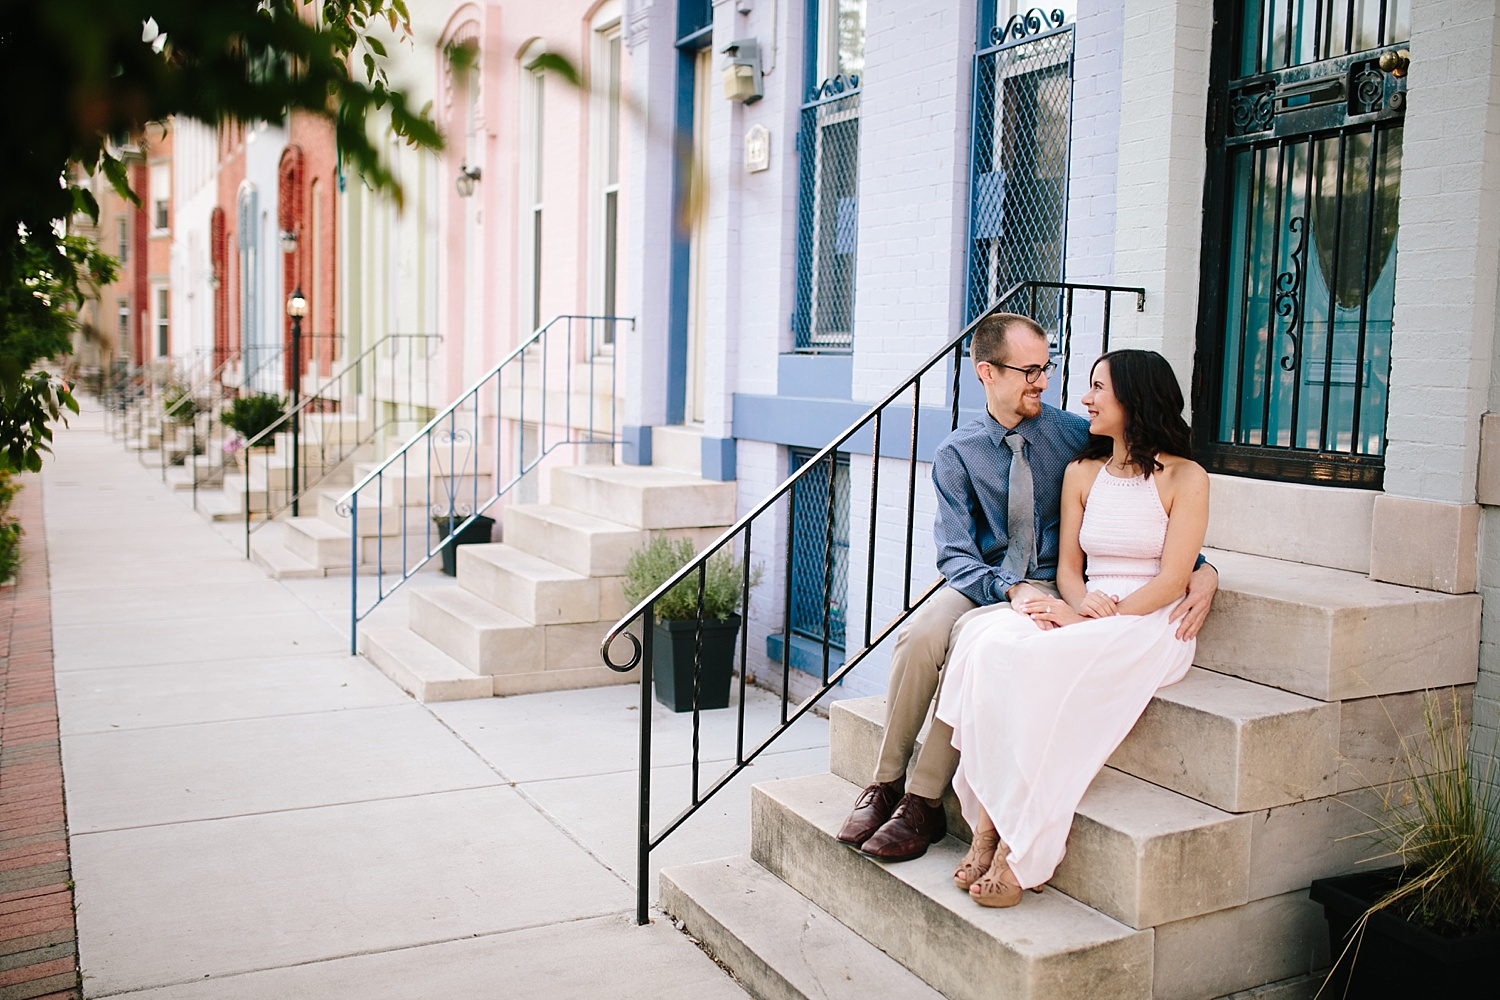 samanthaandrew_baltimore_engagement_session_image003.jpg